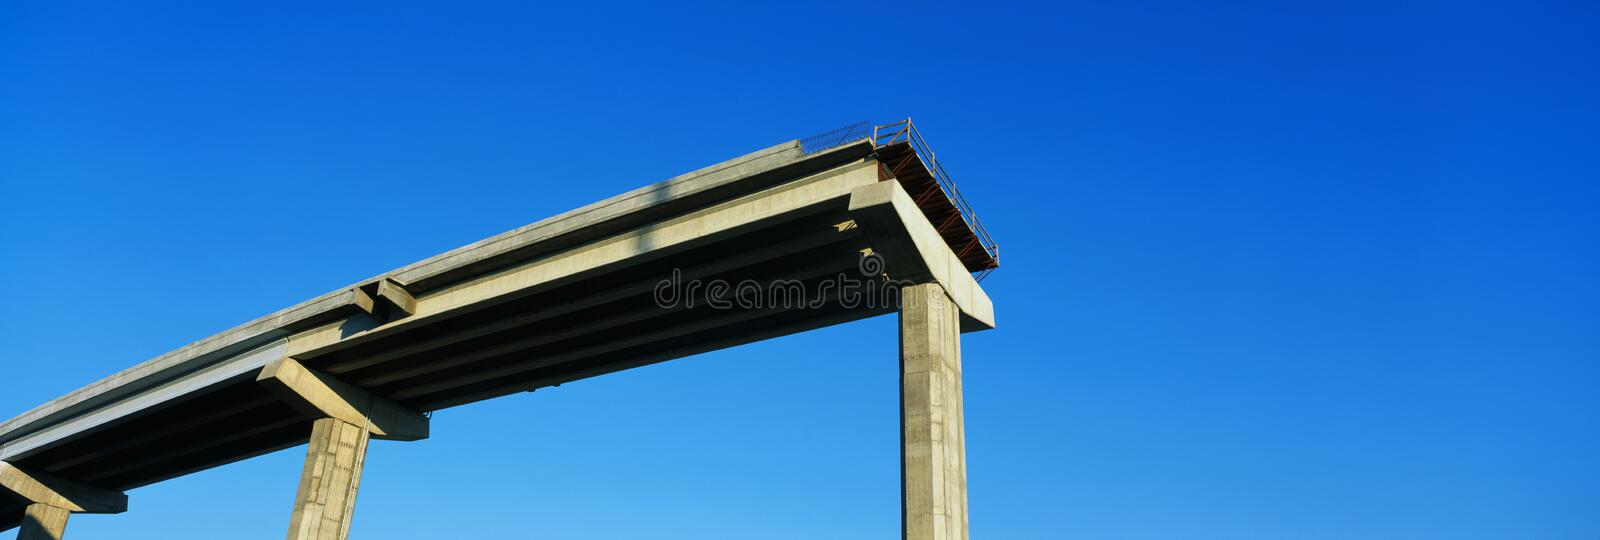 Download Unfinished freeway stock photo. Image of expressway, overpass - 23159770